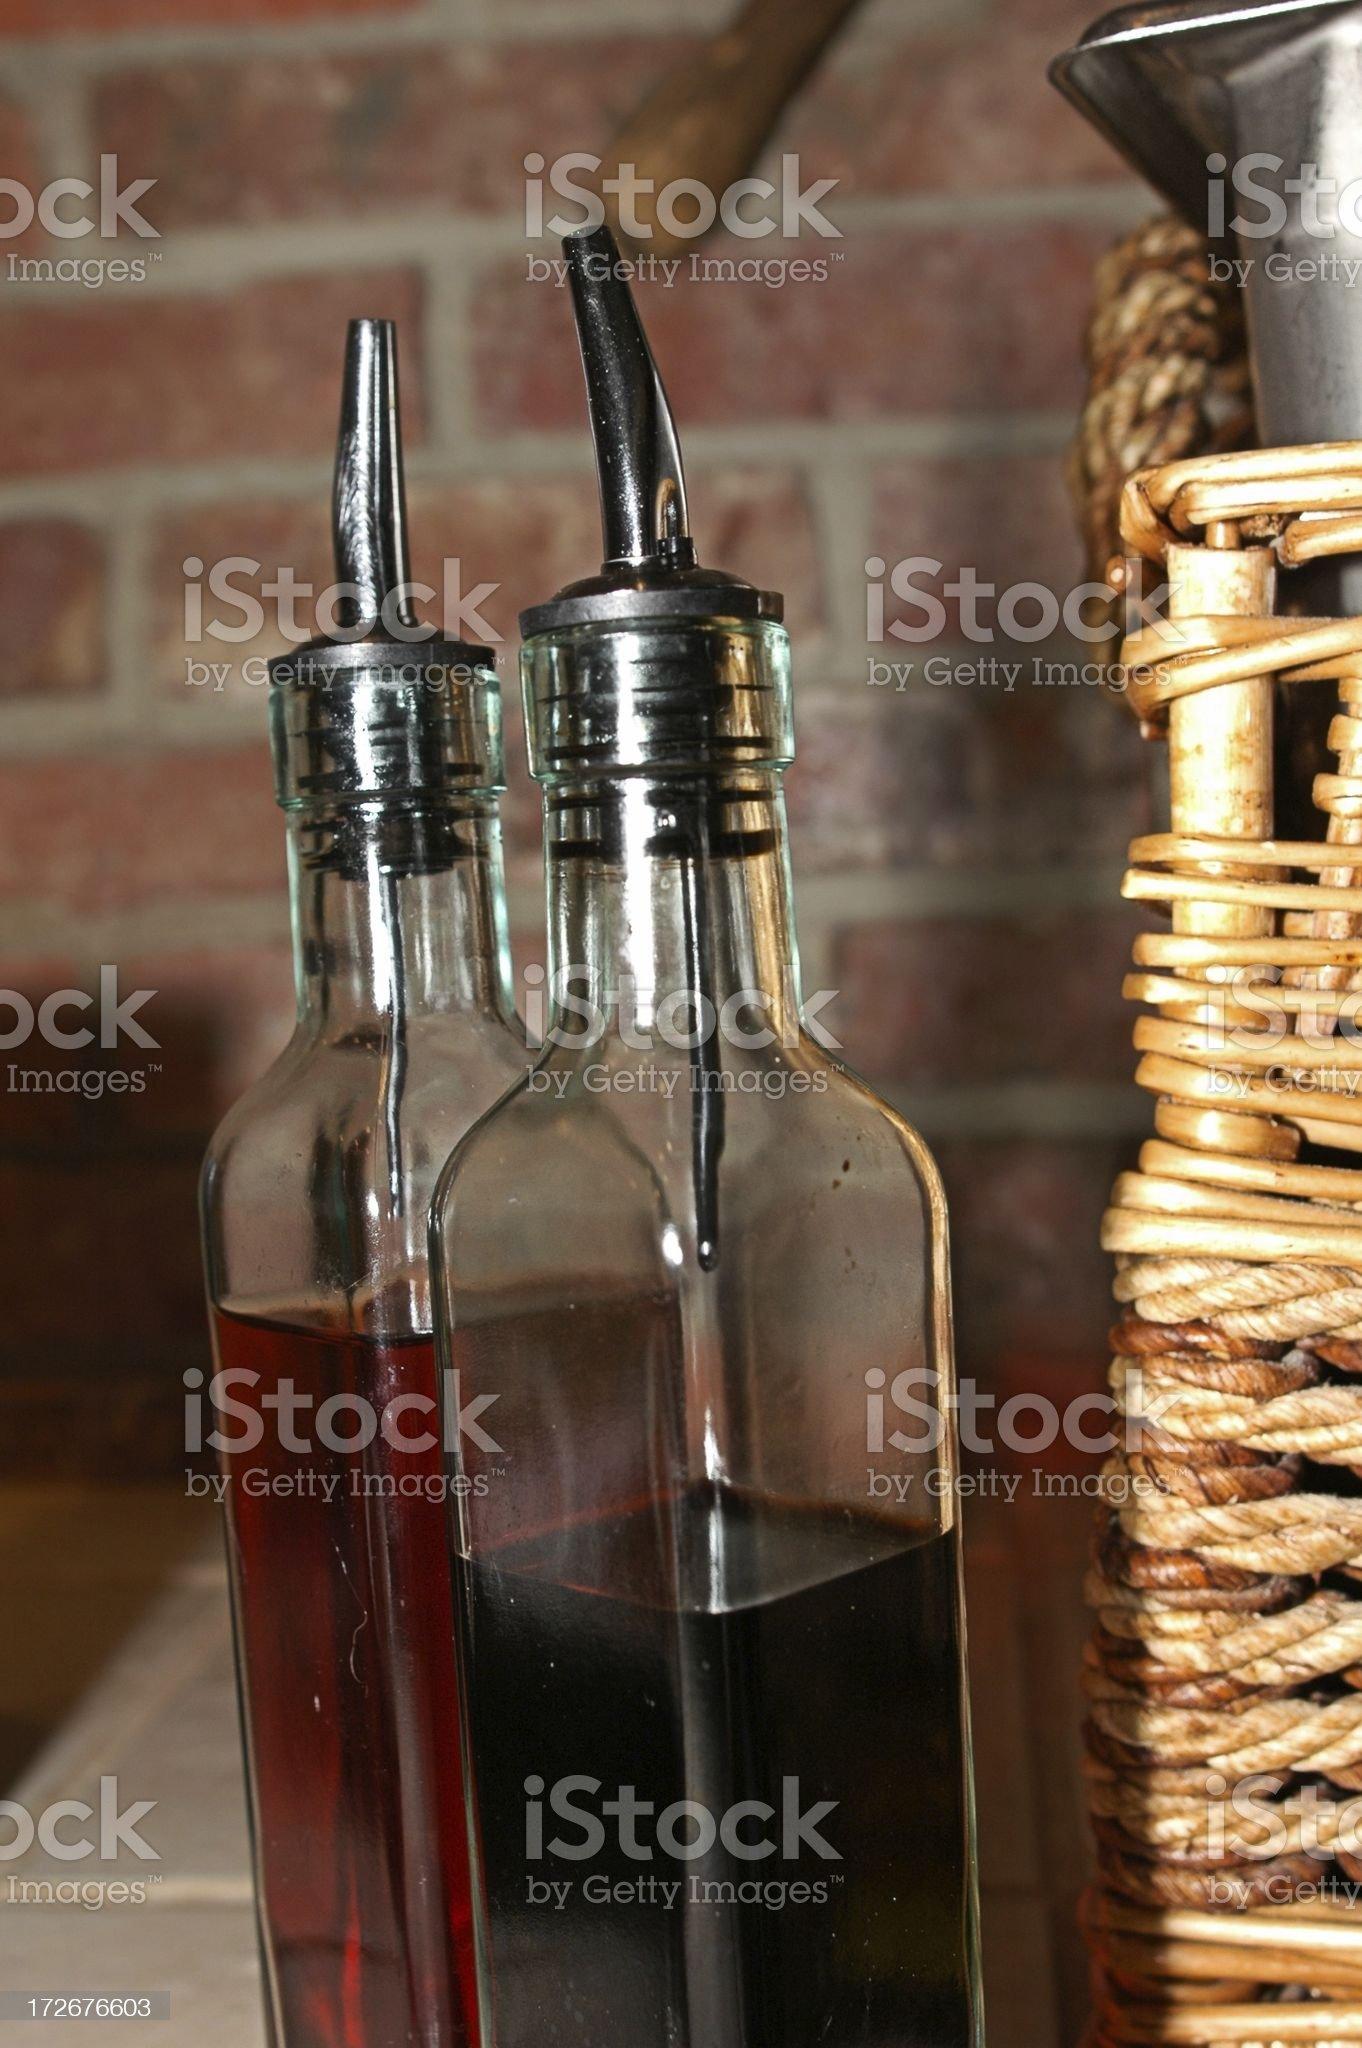 bottles of oil and vinegar royalty-free stock photo